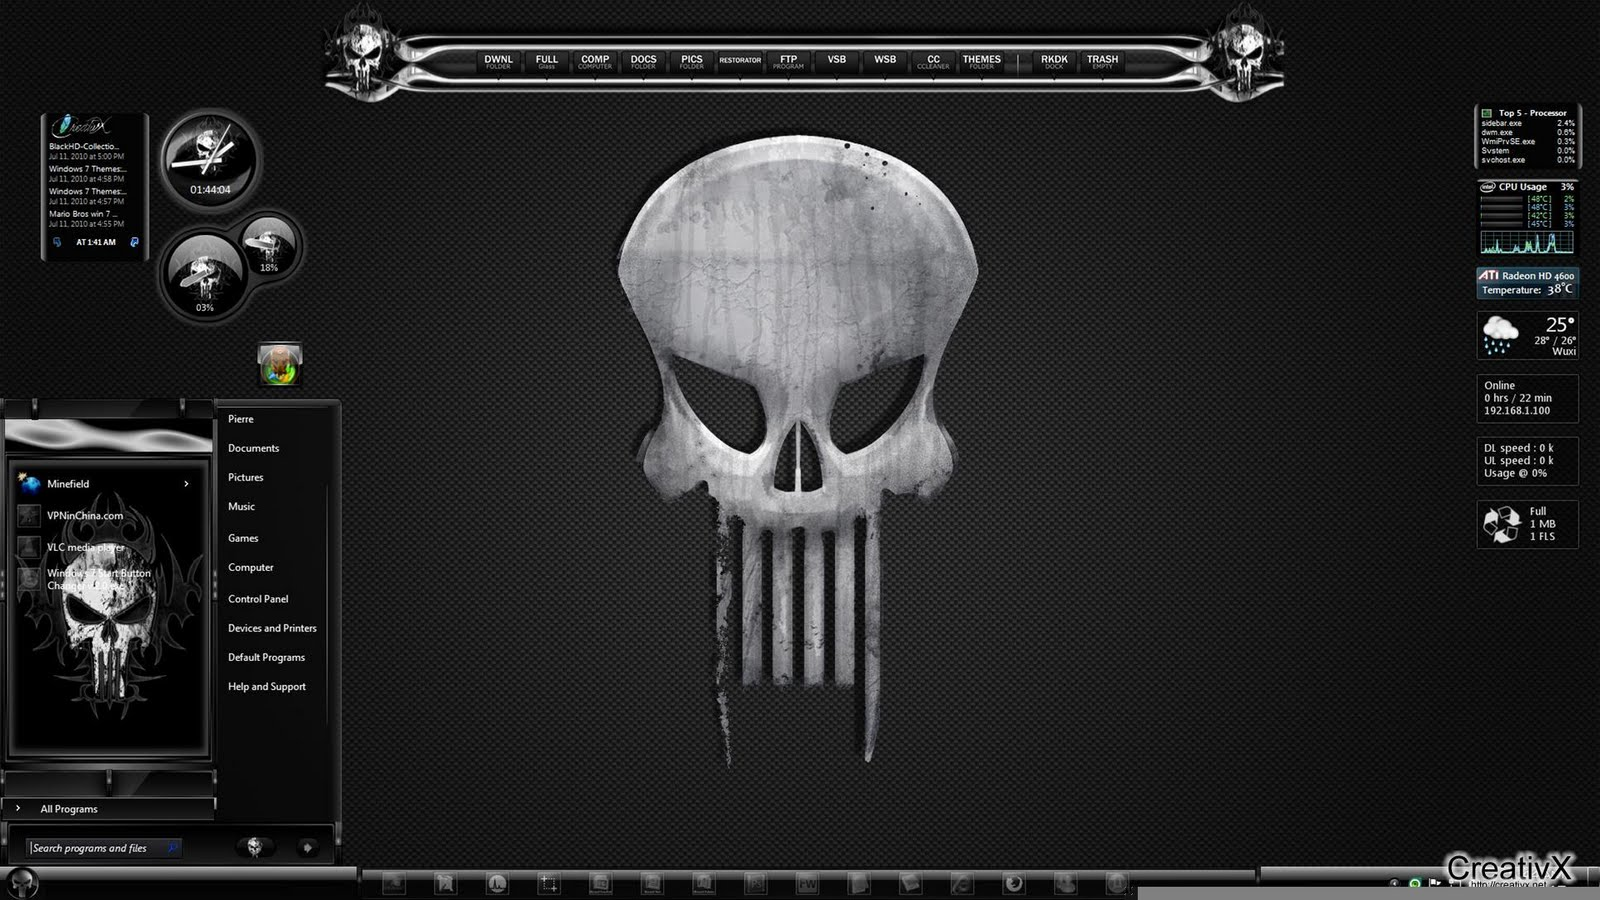 skull wallpaper for windows 7 - photo #48